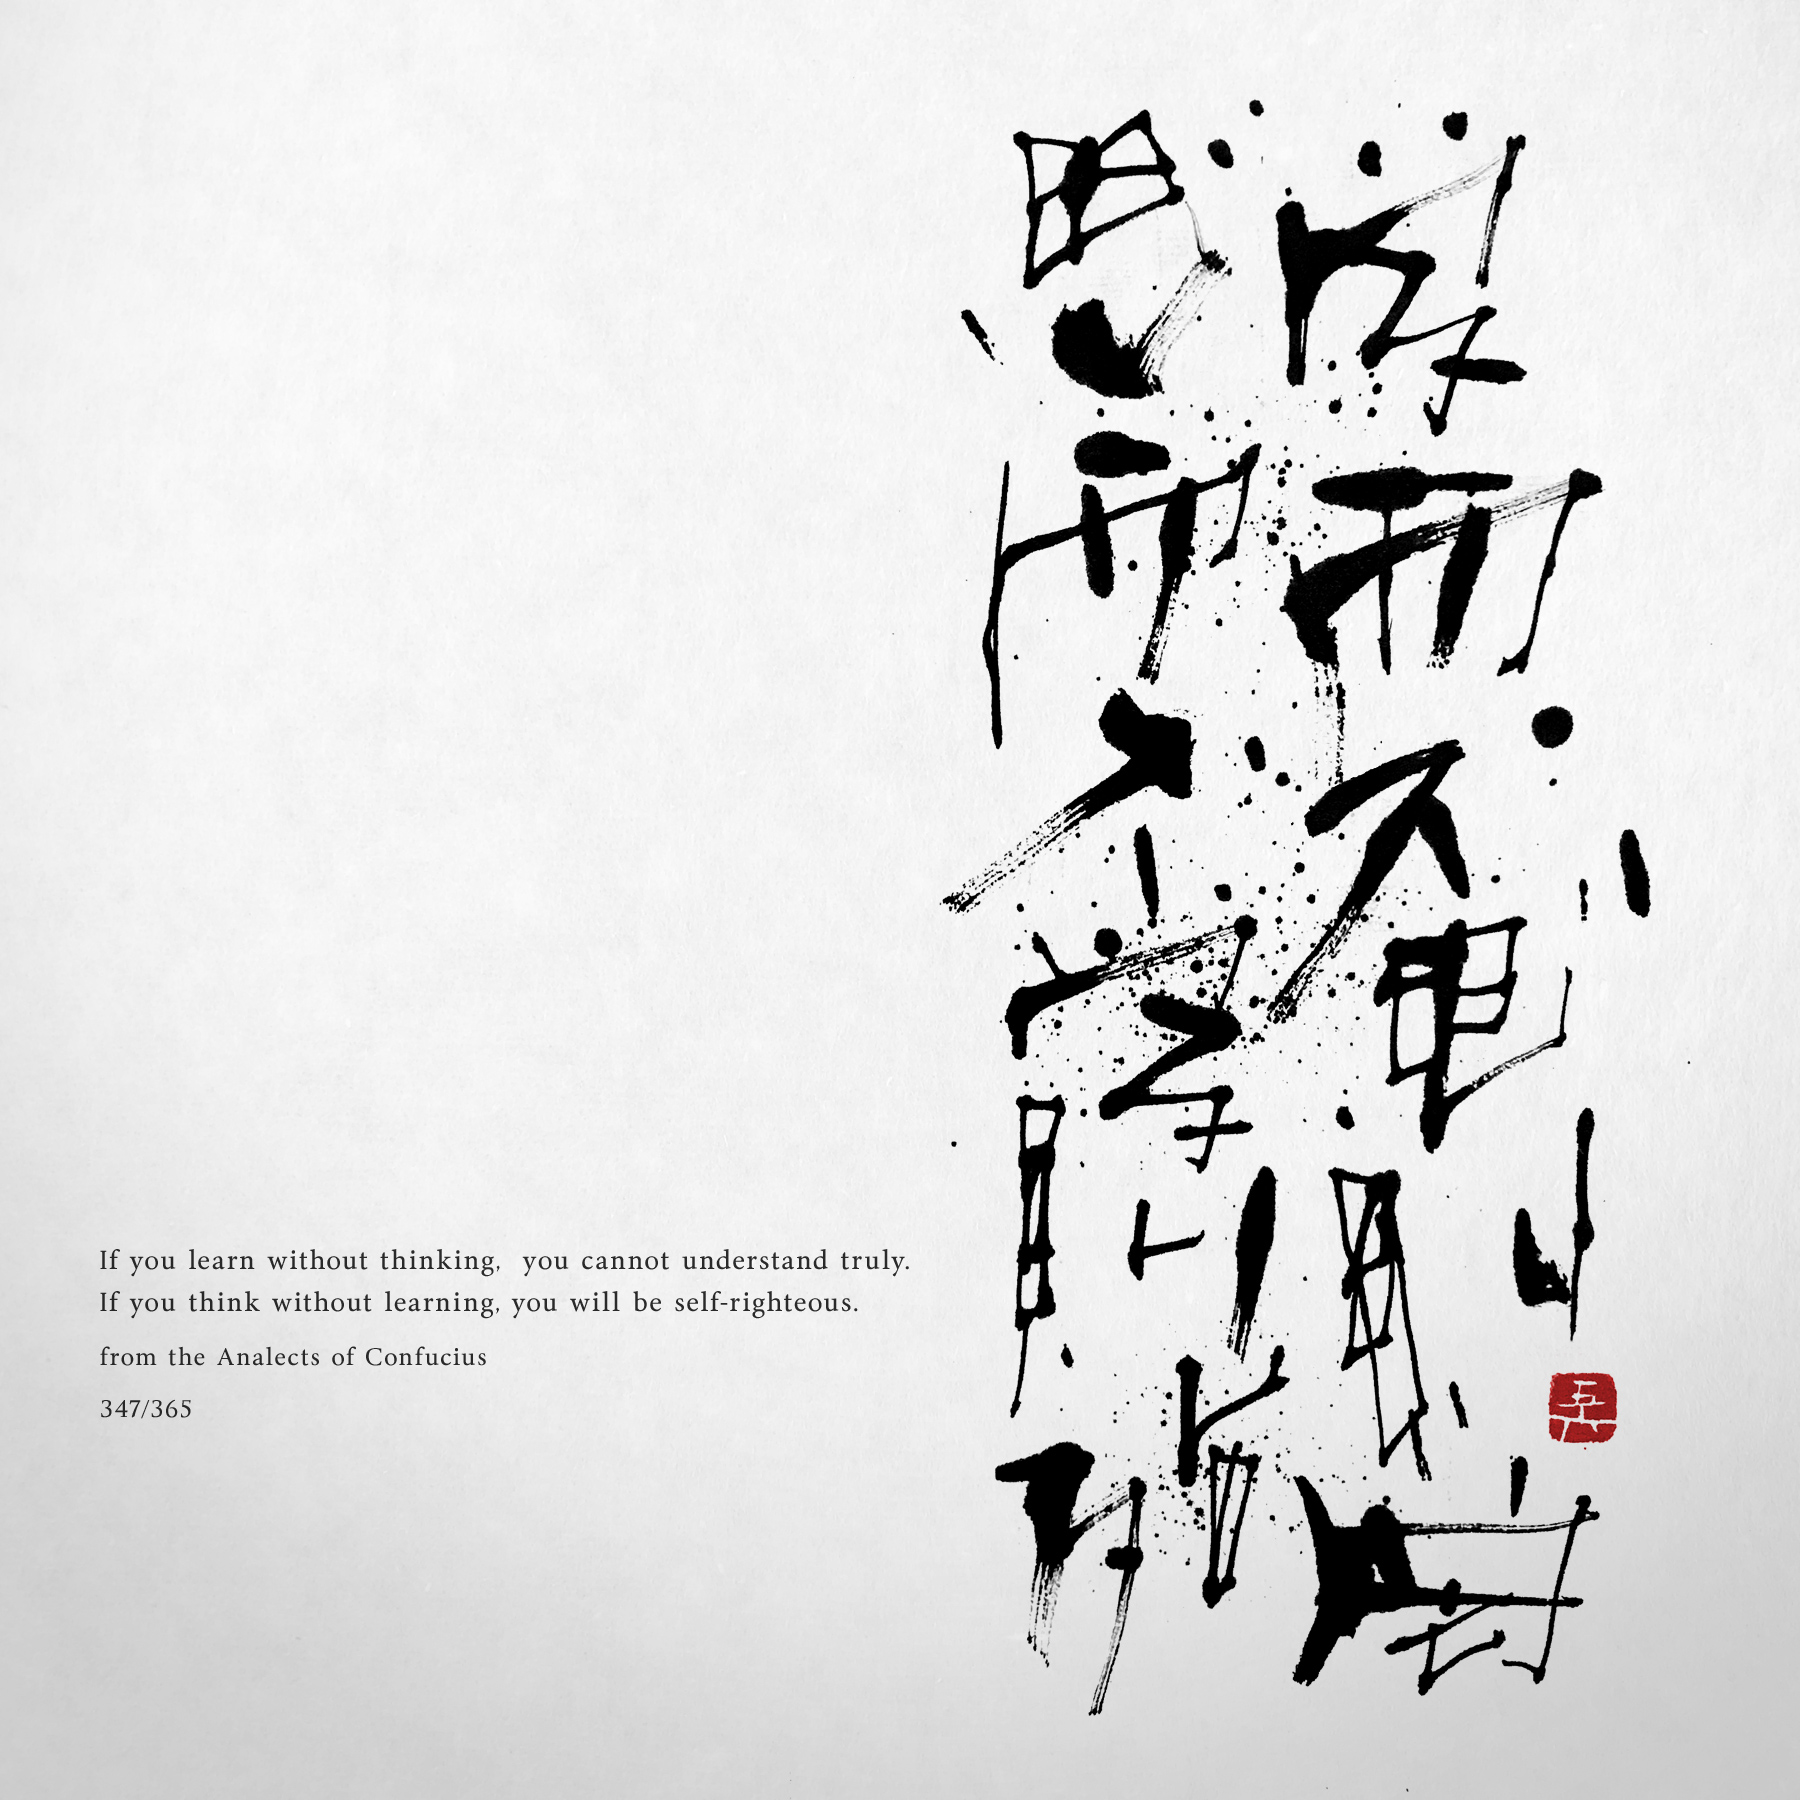 学而不思則罔 | from the Analects of Confucius 書道作品 japaneseart japanese calligraphy 書家 田川悟郎 Goroh Tagawa